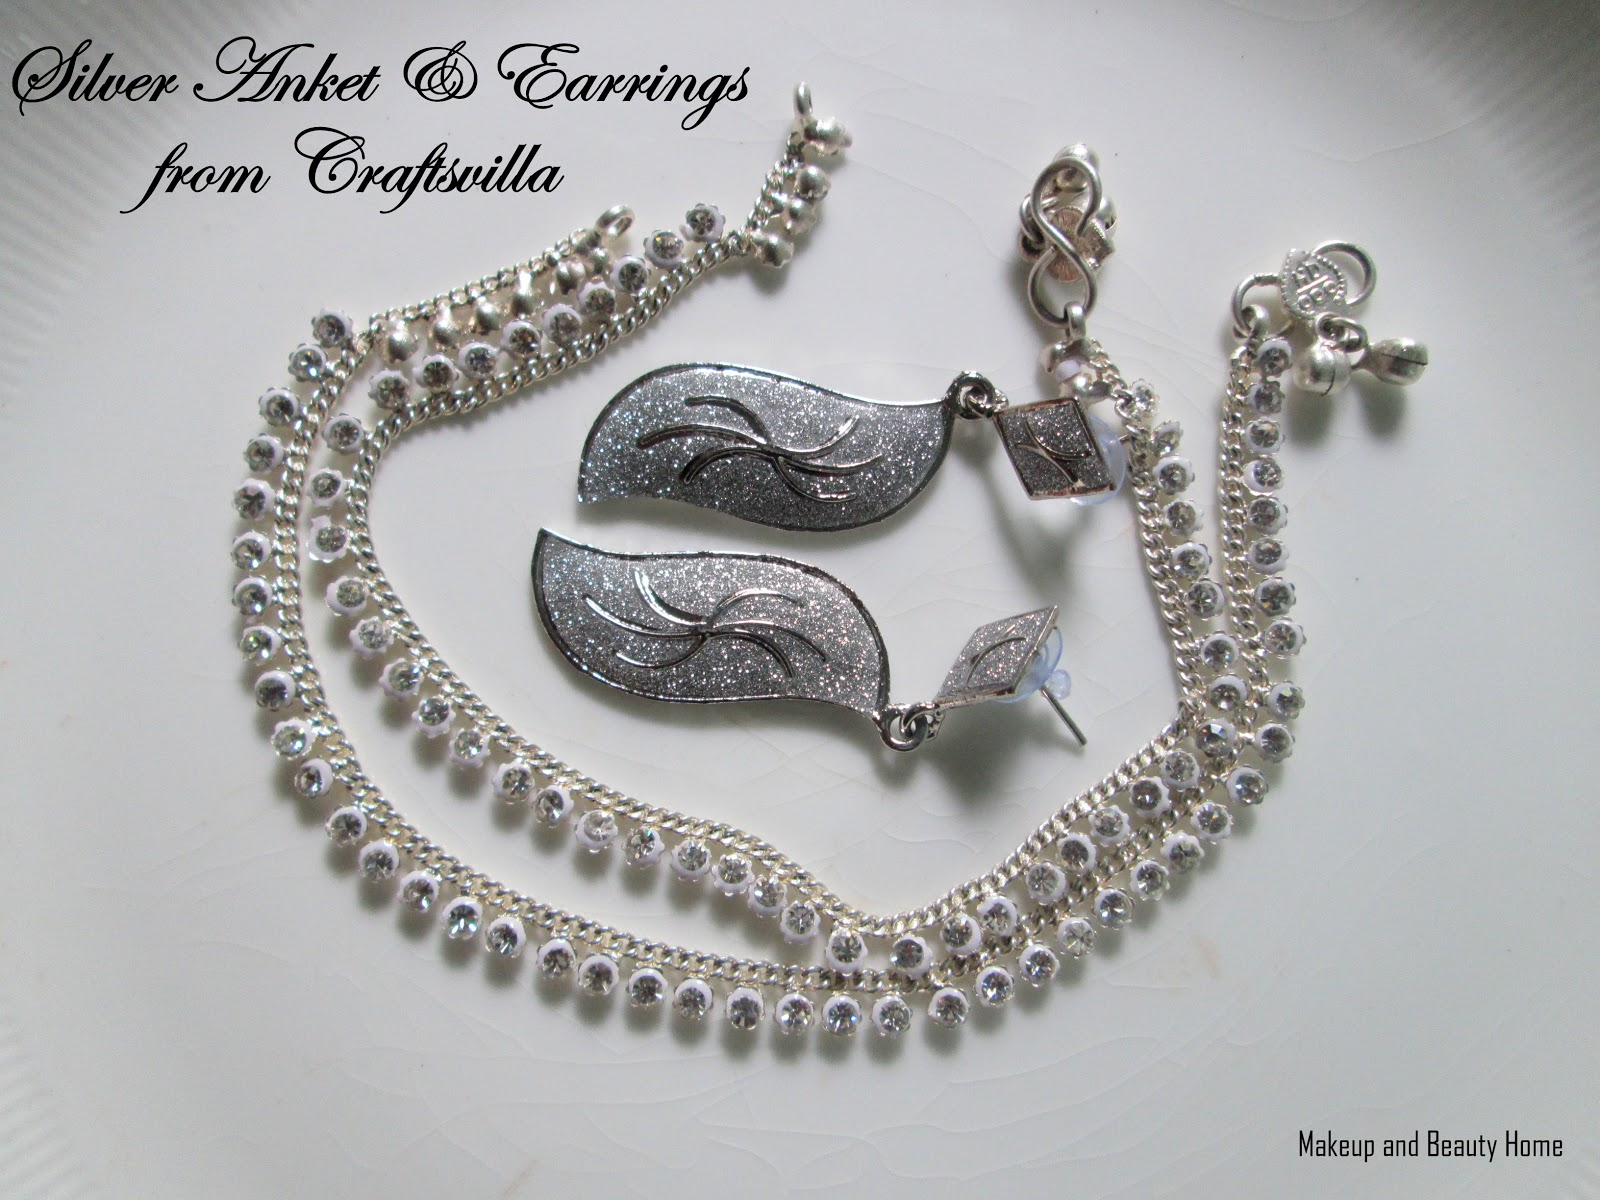 Anti Aging For Beauty: Silver Anket & Earrings from Craftsvilla